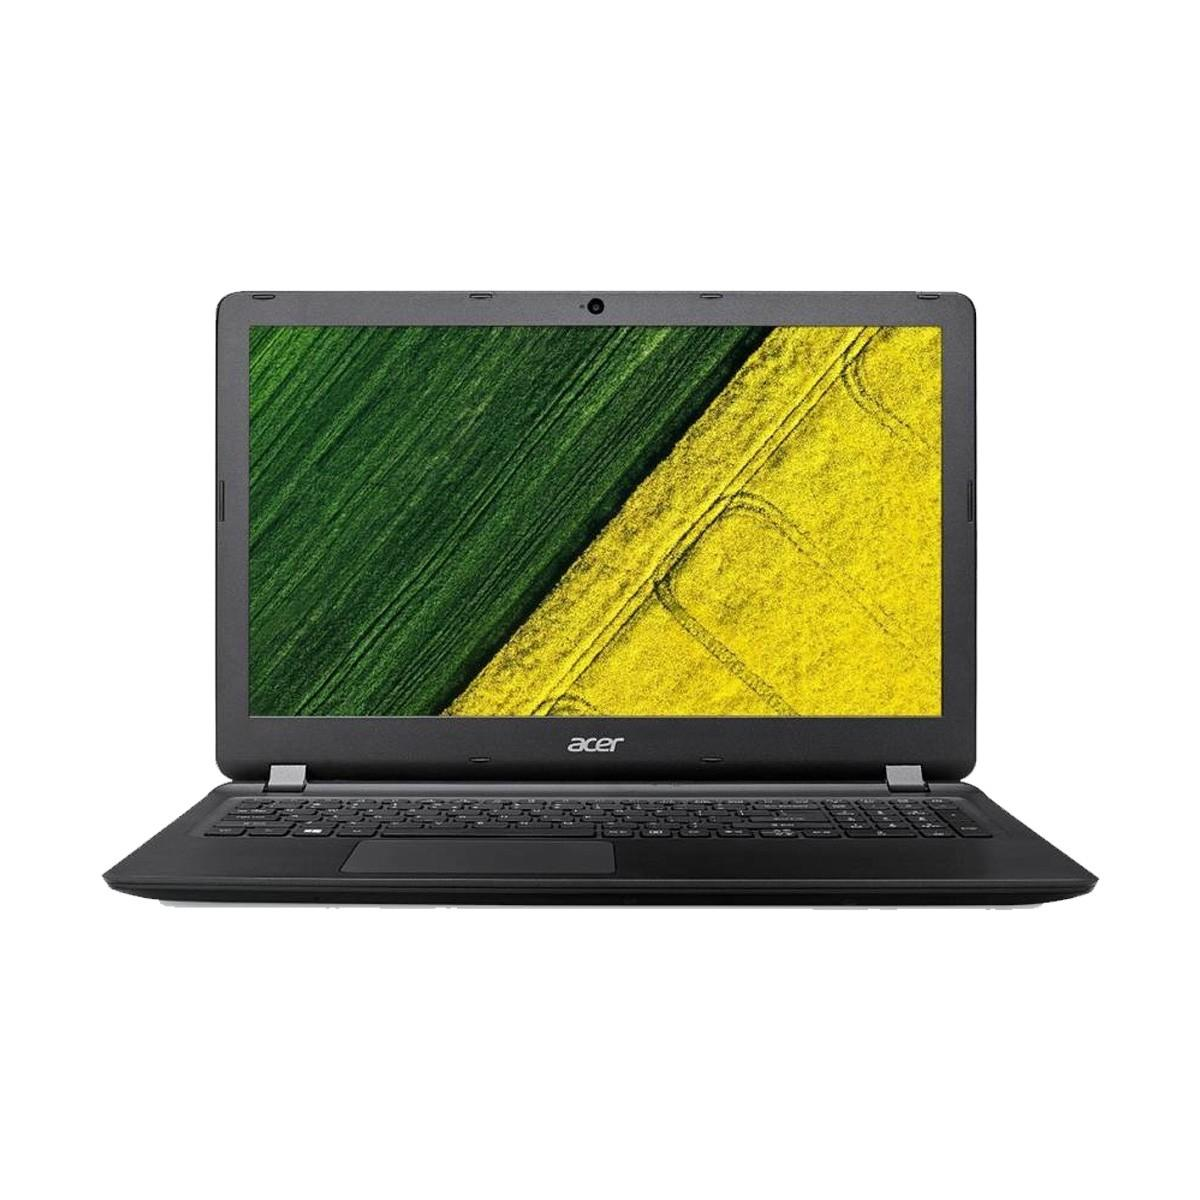 Notebook Klein Acer Aspire E5 476 50wh 7th Gen Intel Core I5 7200u 2 50ghz 4gb Ddr4 1tb 14 Inch Fhd 1920x1080 Display Linux Os Steel Gray Notebook 2 Year